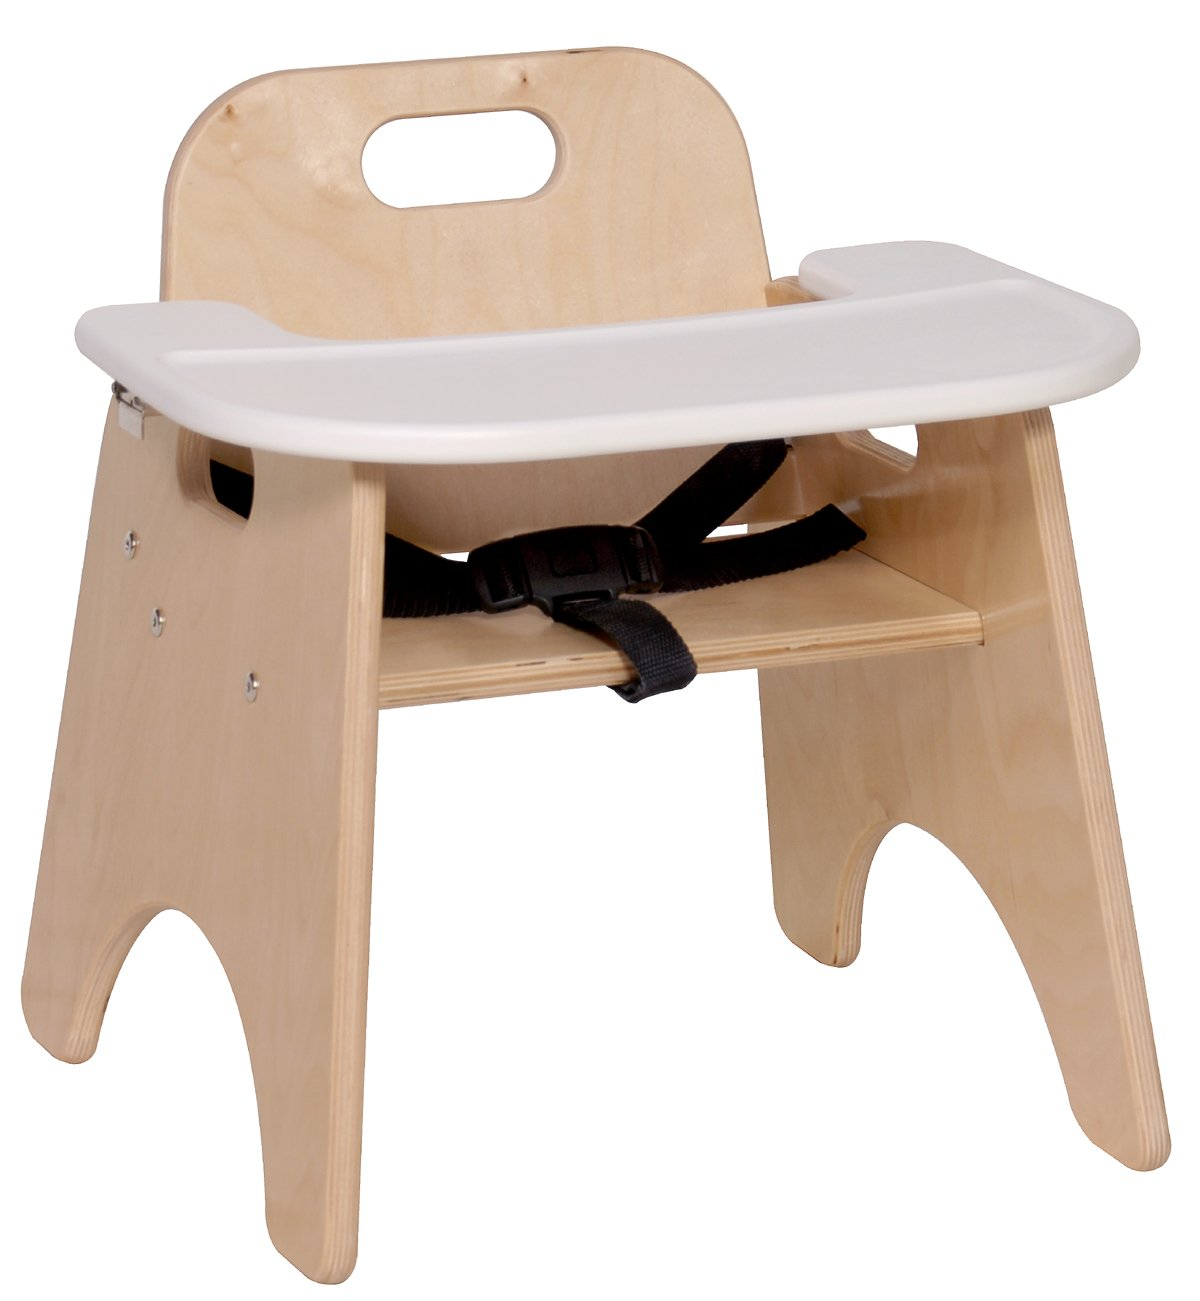 amazoncom steffy wood products 9inch high chair with tray kitchen u0026 dining